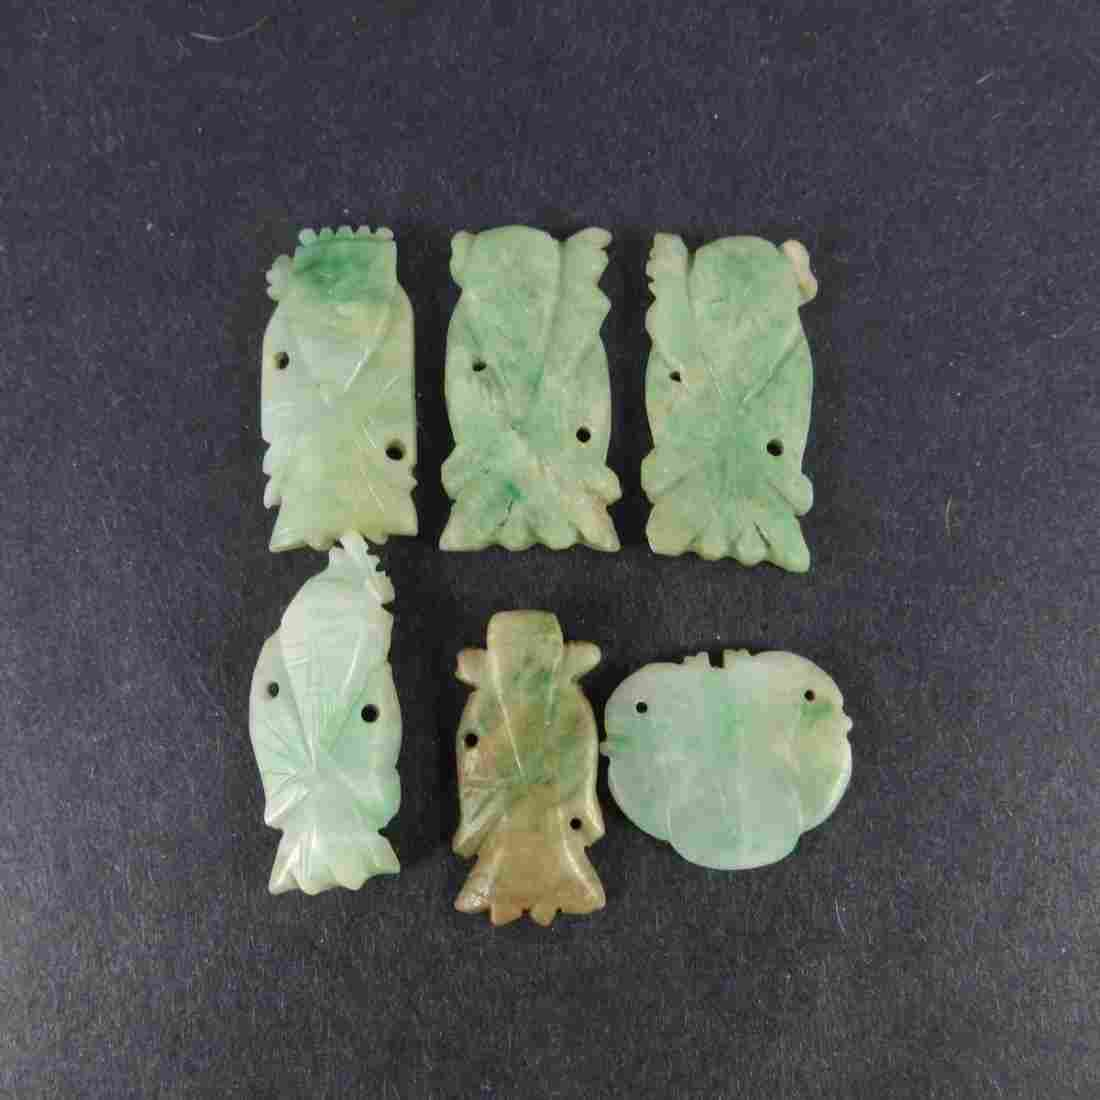 Six Chinese Qing Dynasty Jadeite Pieces